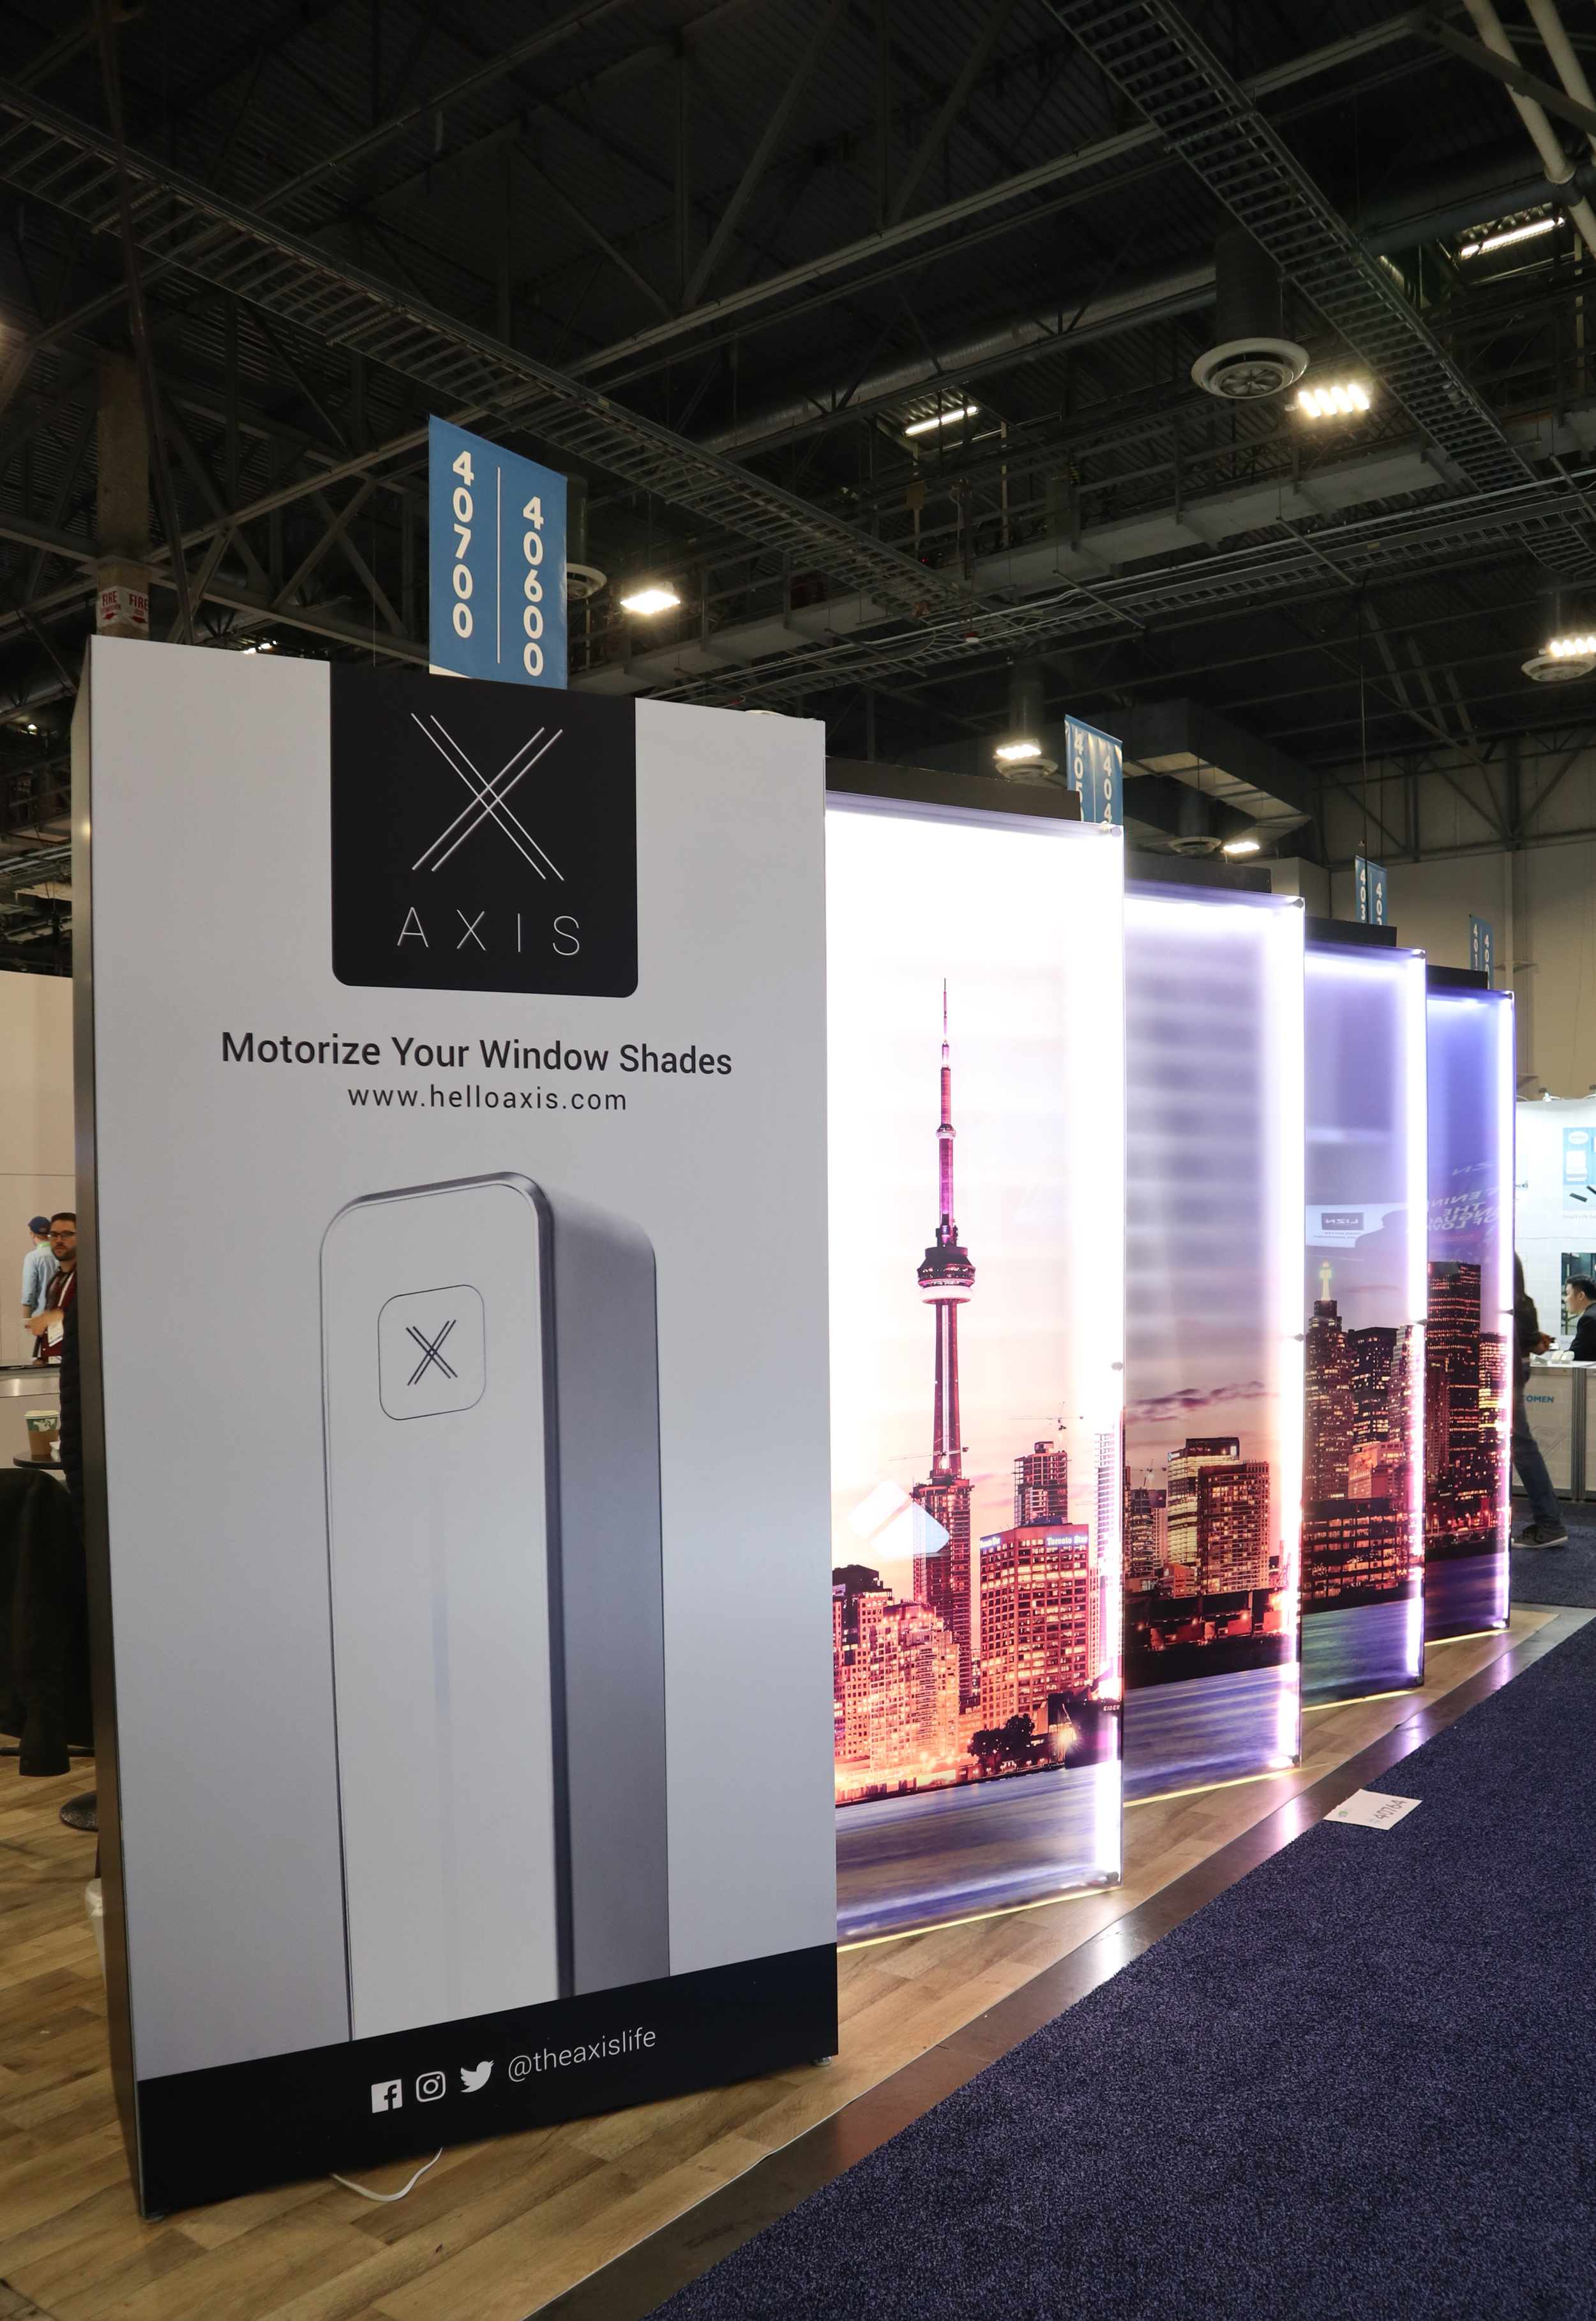 MMB customer  AXIS  at CES - retrofit existing blinds and voice enable them through Alexa, Google, and Samsung SmartThings.